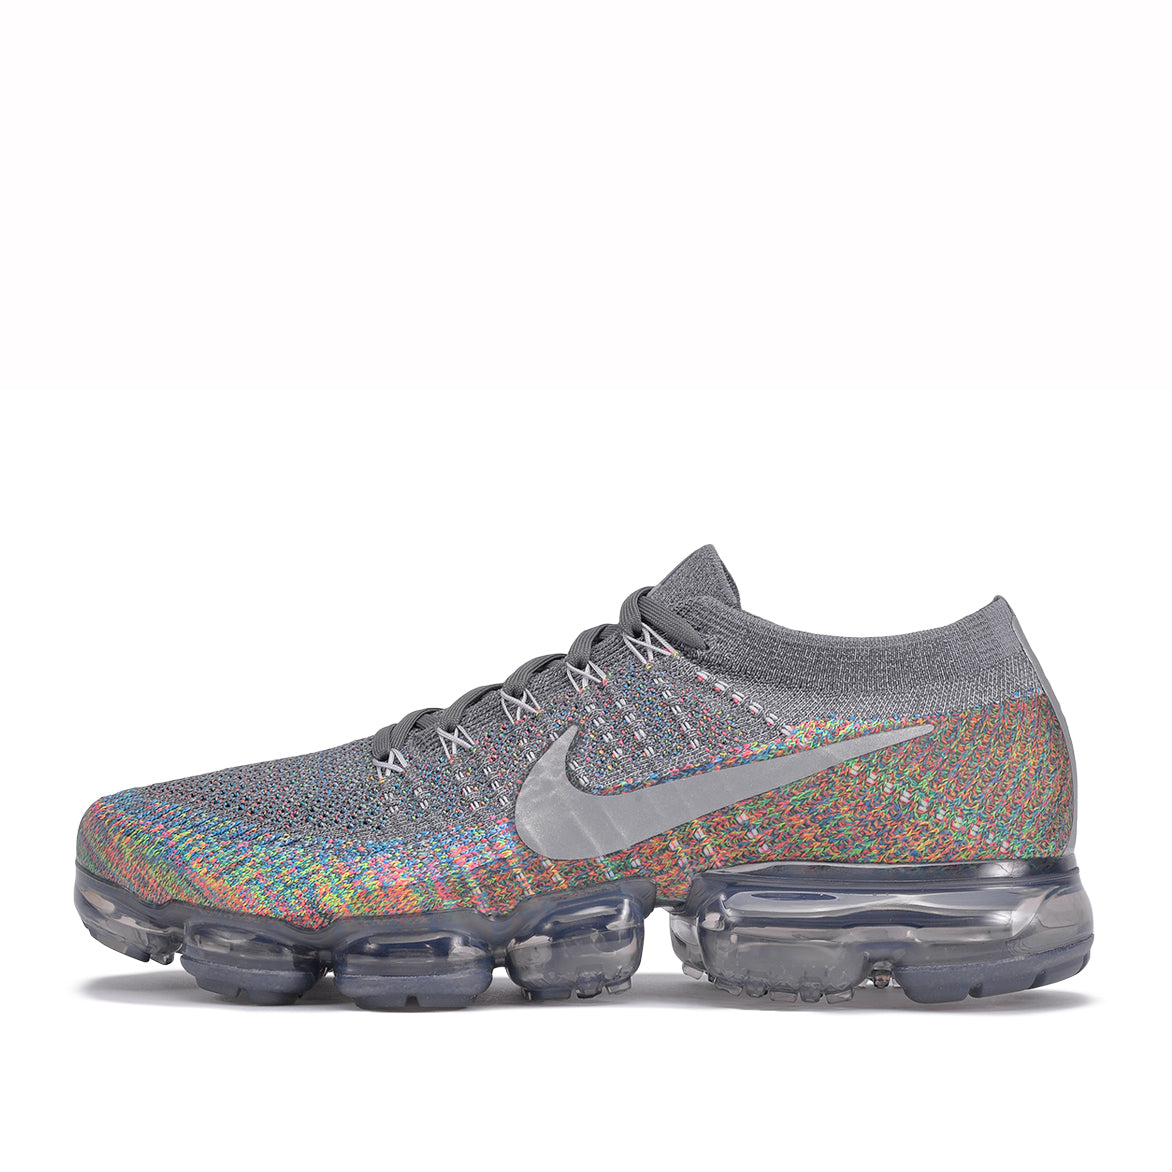 ab32250a5df ... wholesale air vapormax flyknit dark grey reflect silver 1e4b4 49d42